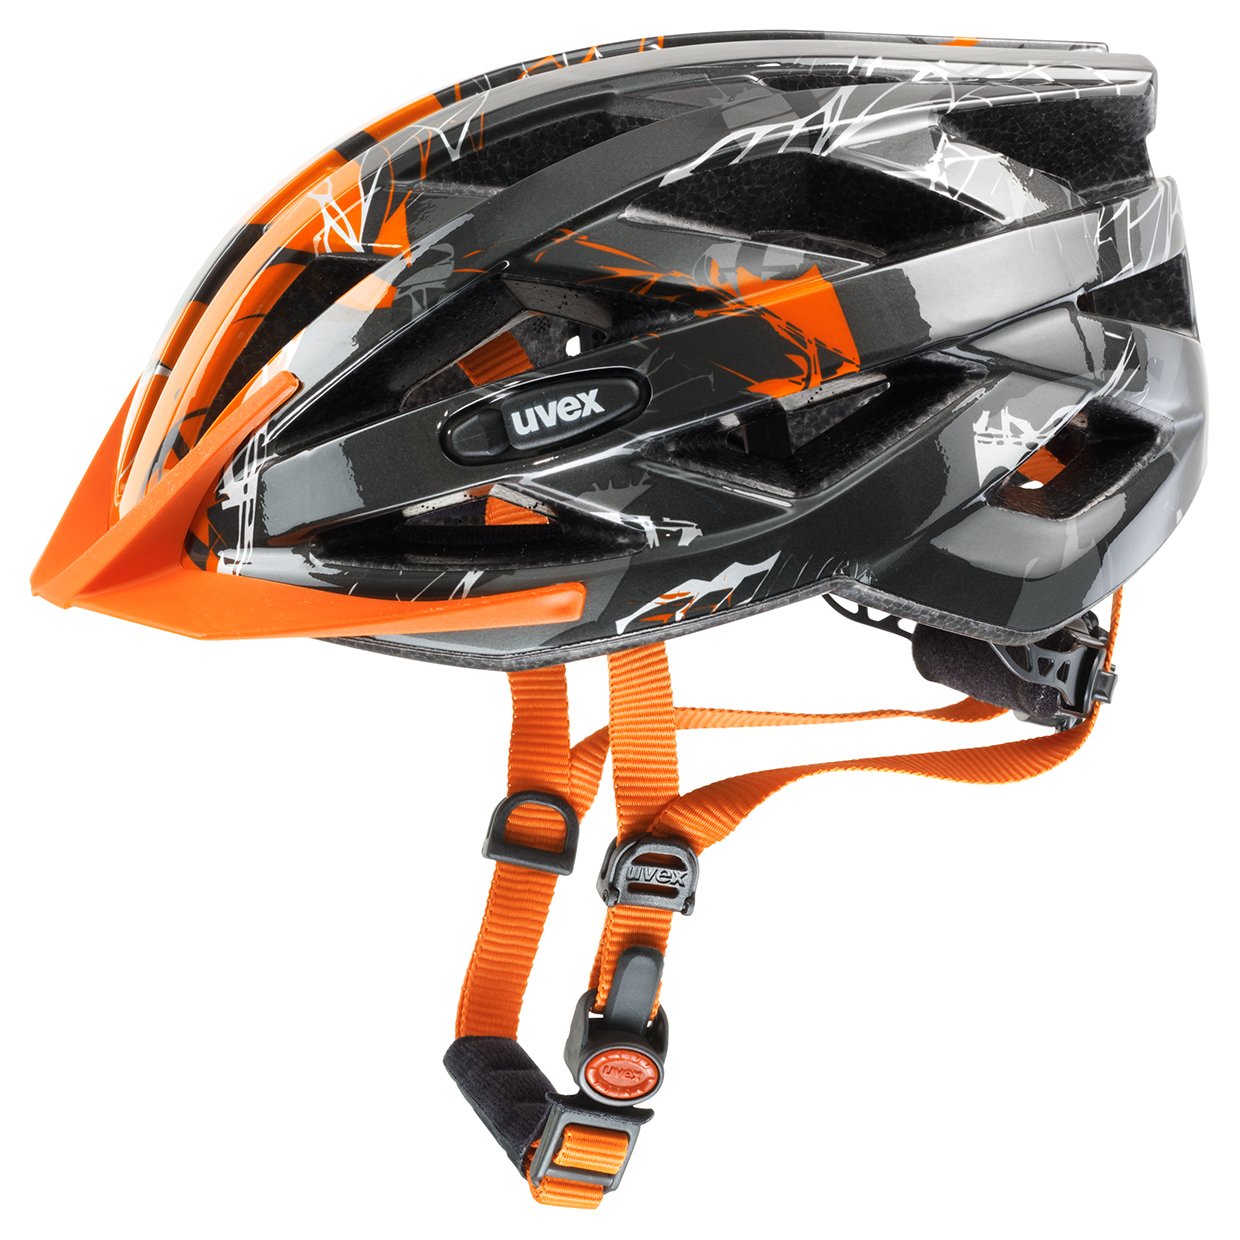 UVEX I-VO C, DARK SILVER-ORANGE 2015 52-56 cm